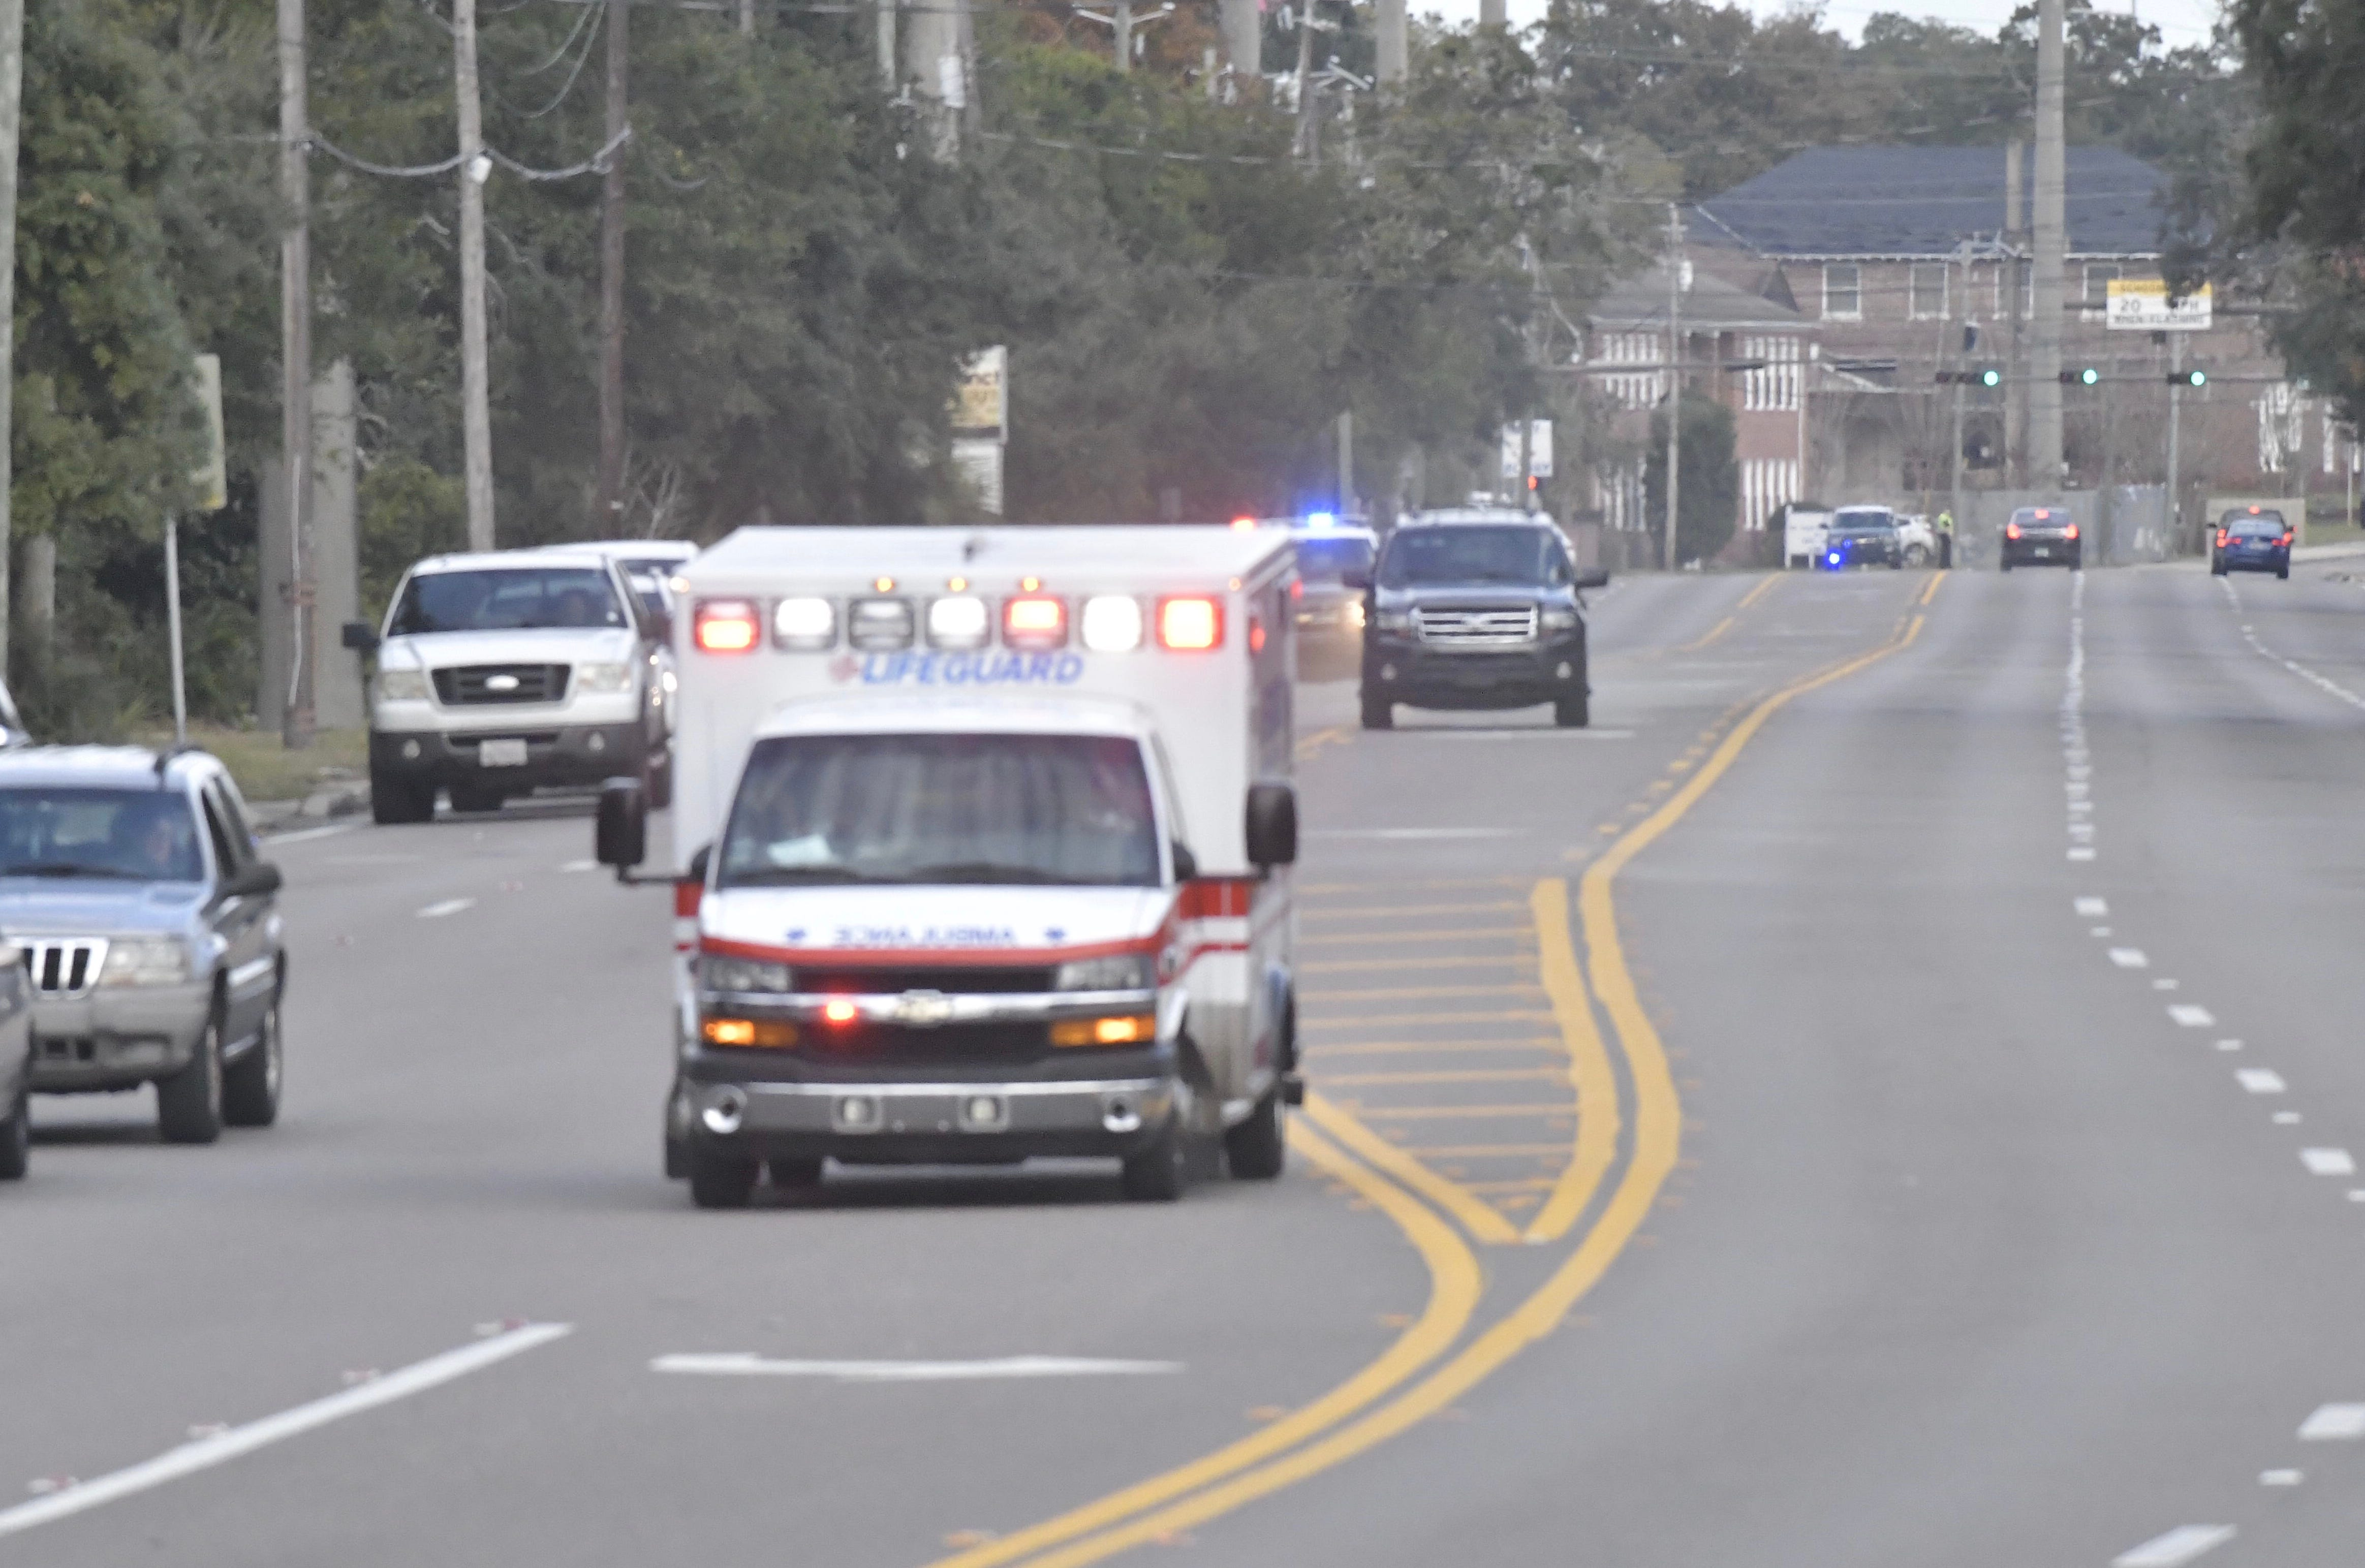 3 dead, including suspect, in shooting at Naval Air Station Pensacola in Florida; at least 11 hospitalized